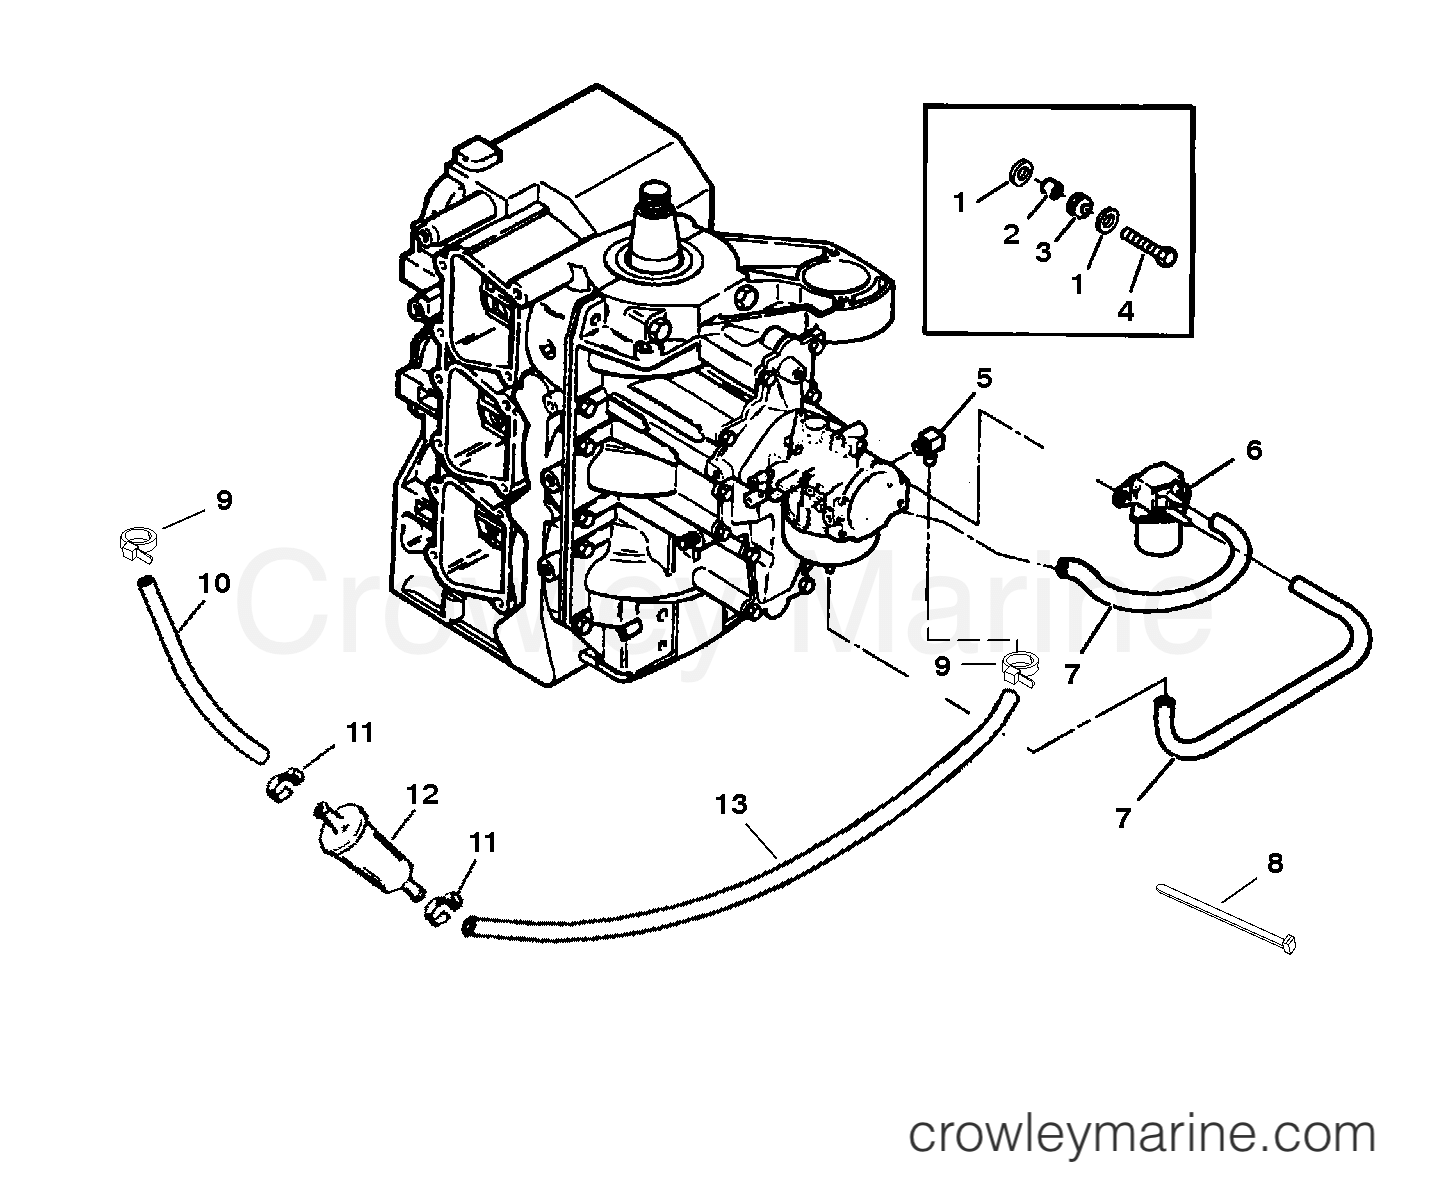 Fuel Filter And Prime System